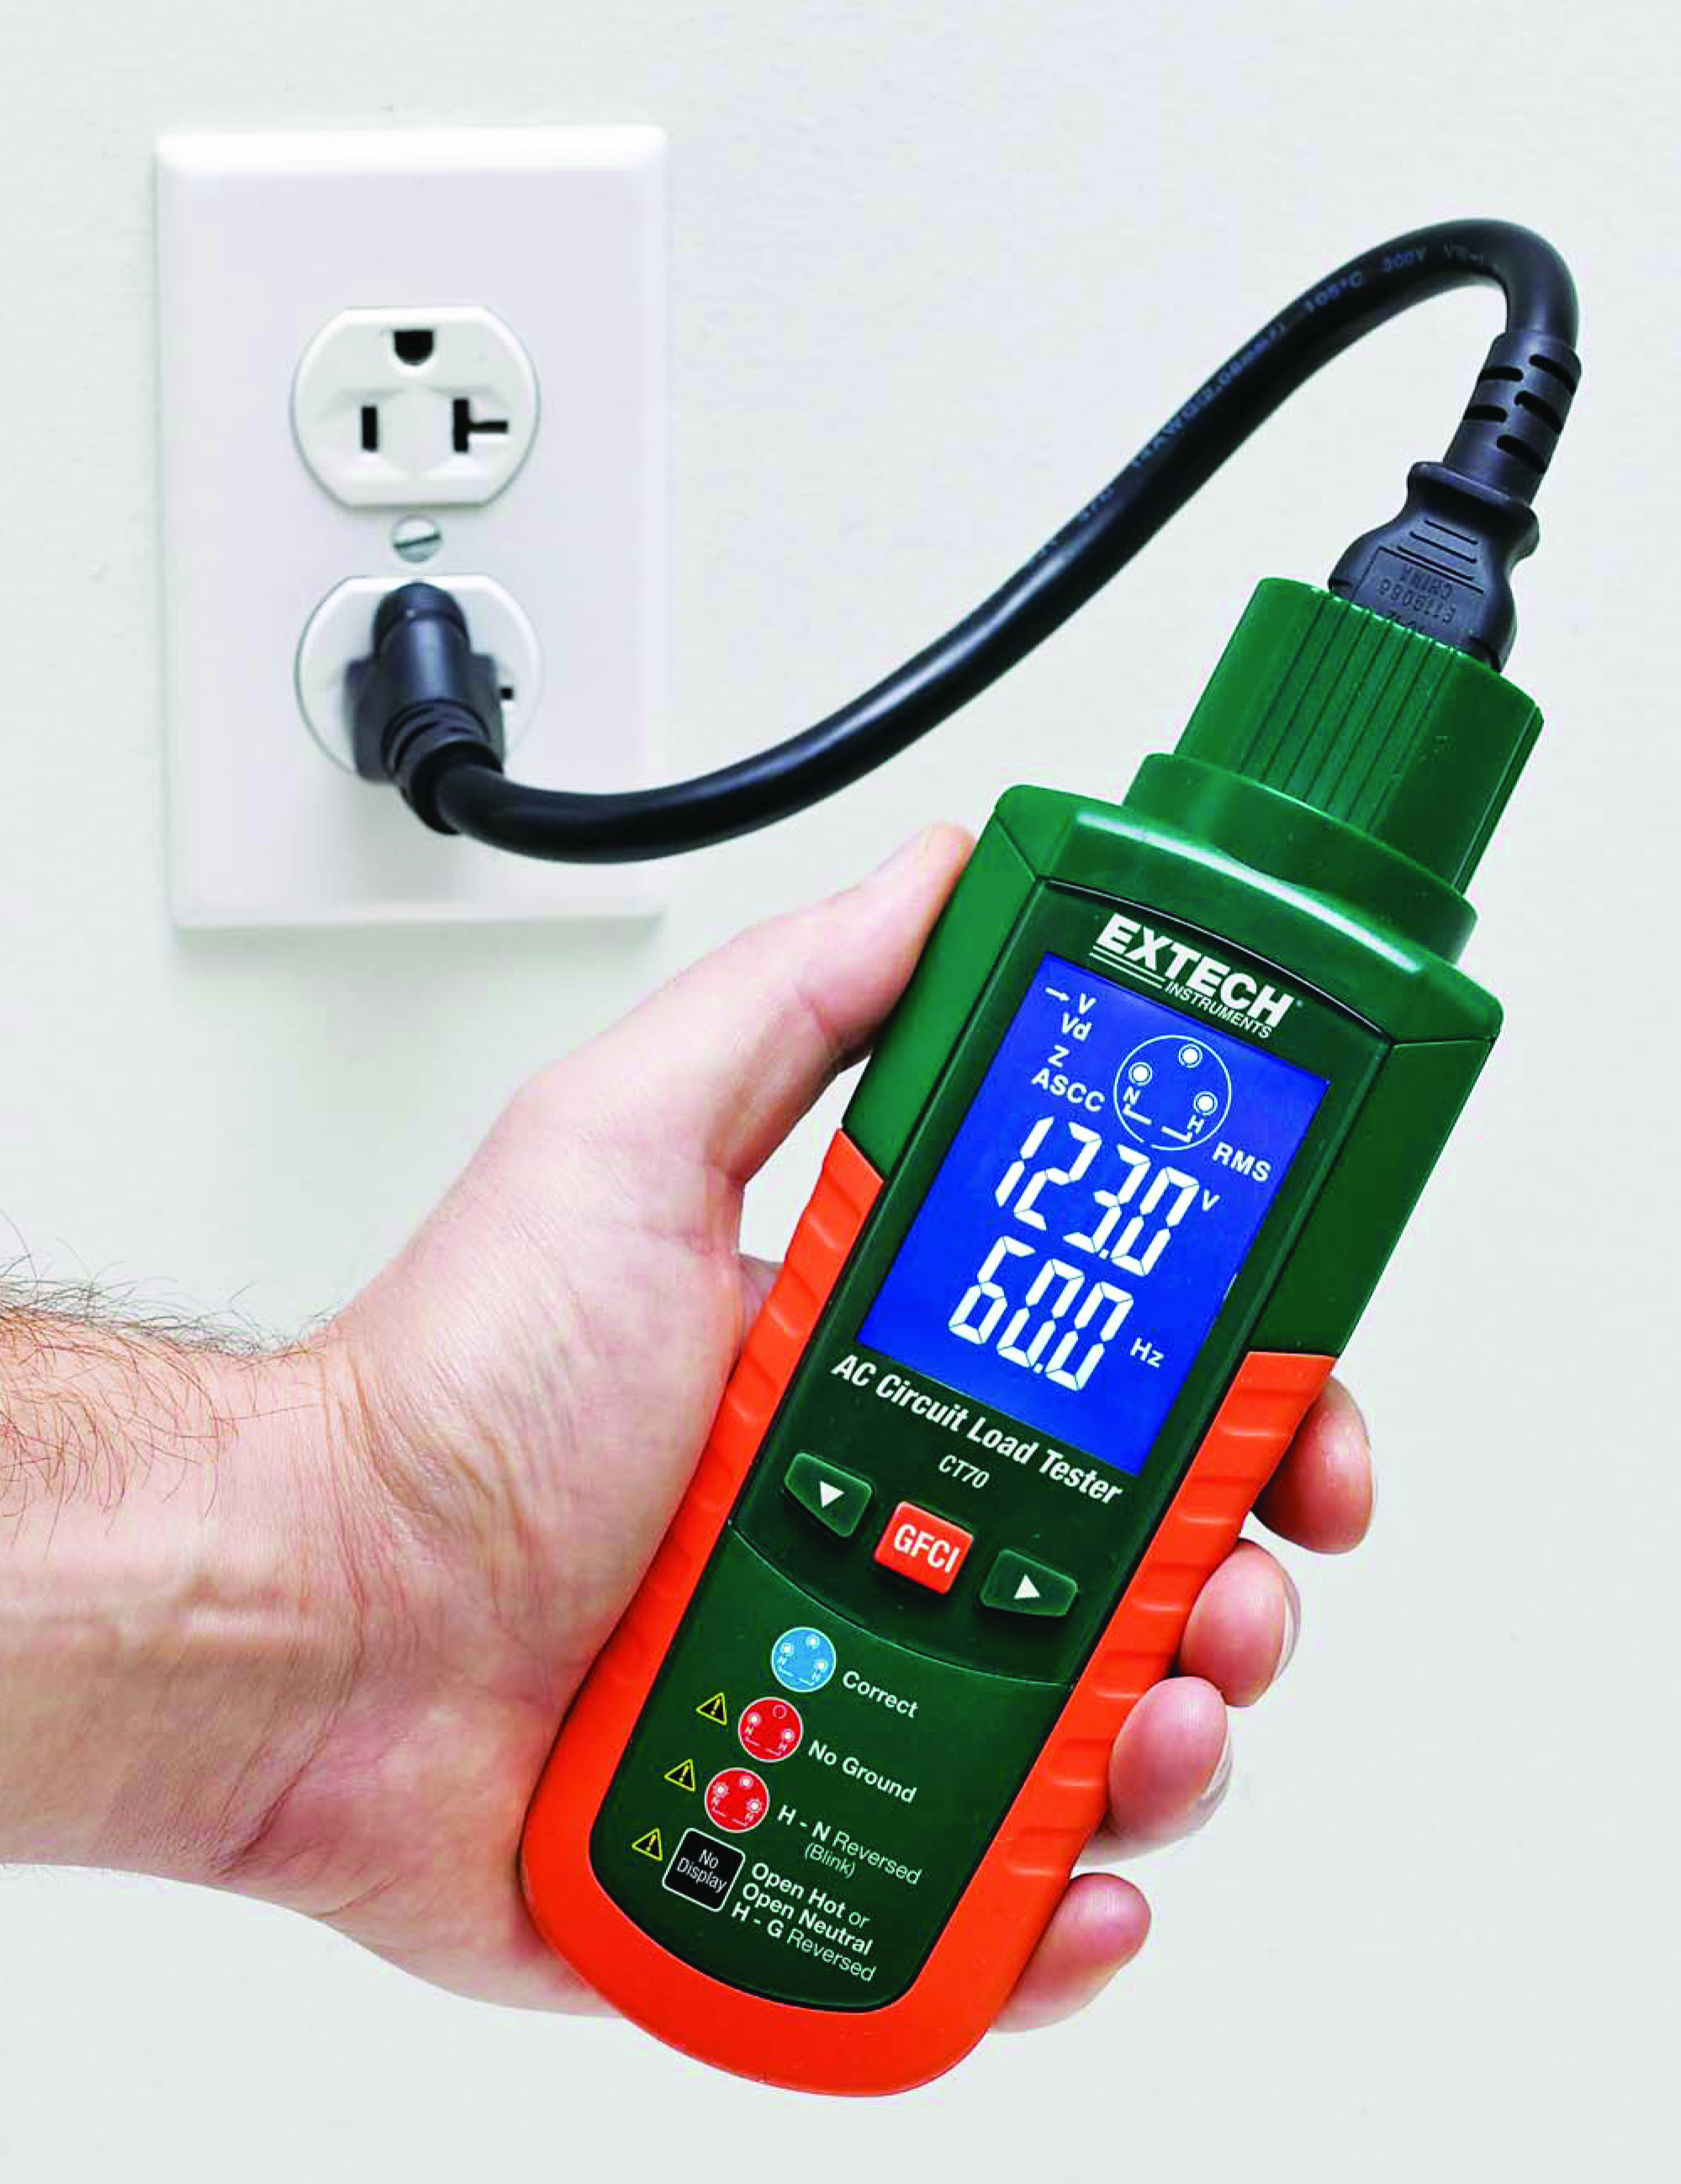 House Circuit Tester : Perform marina dock electrical grounding inspections